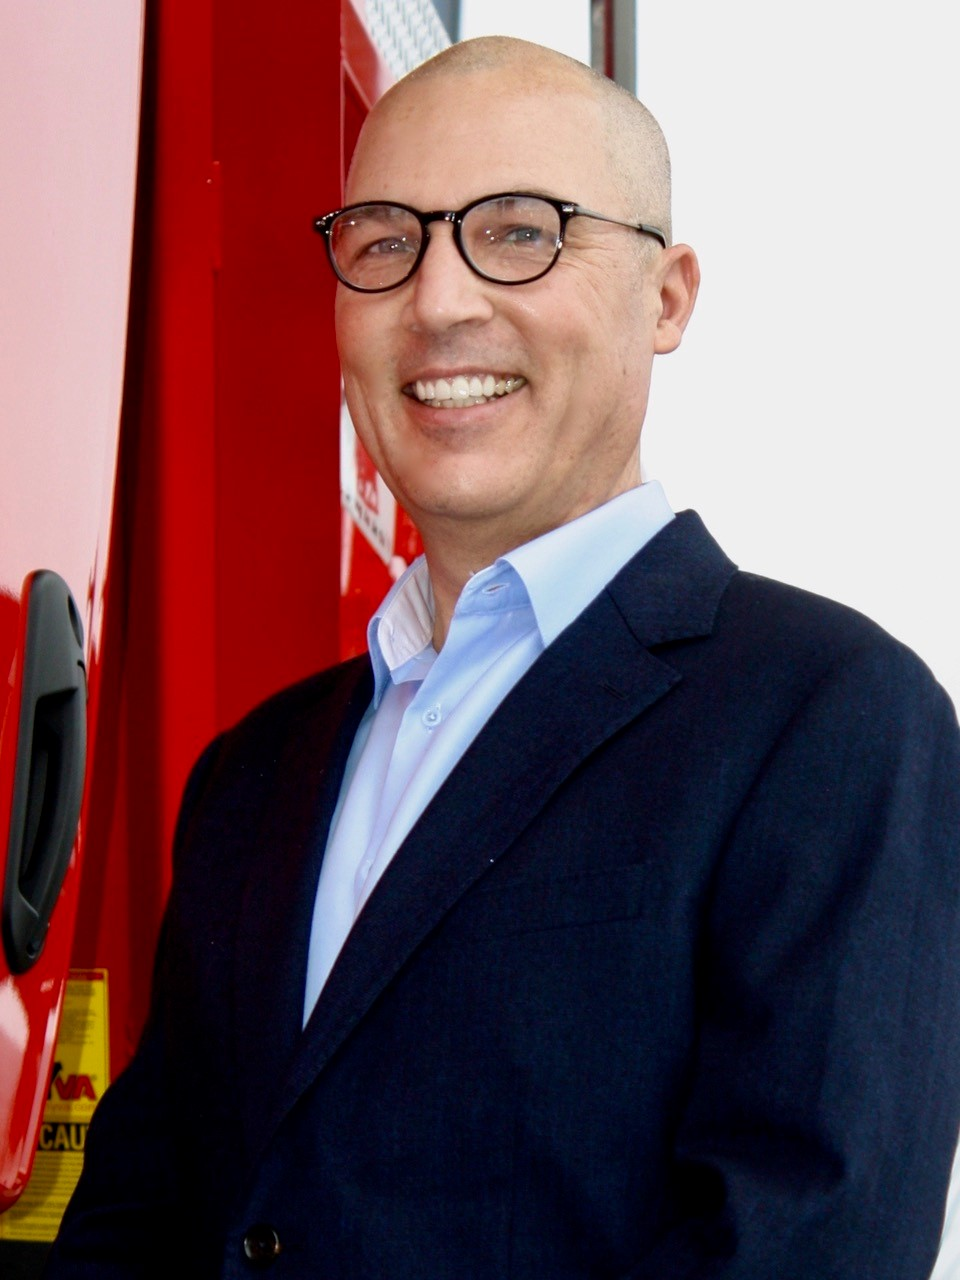 Giroux Selected to Lead Heavy Duty Manufacturers Association